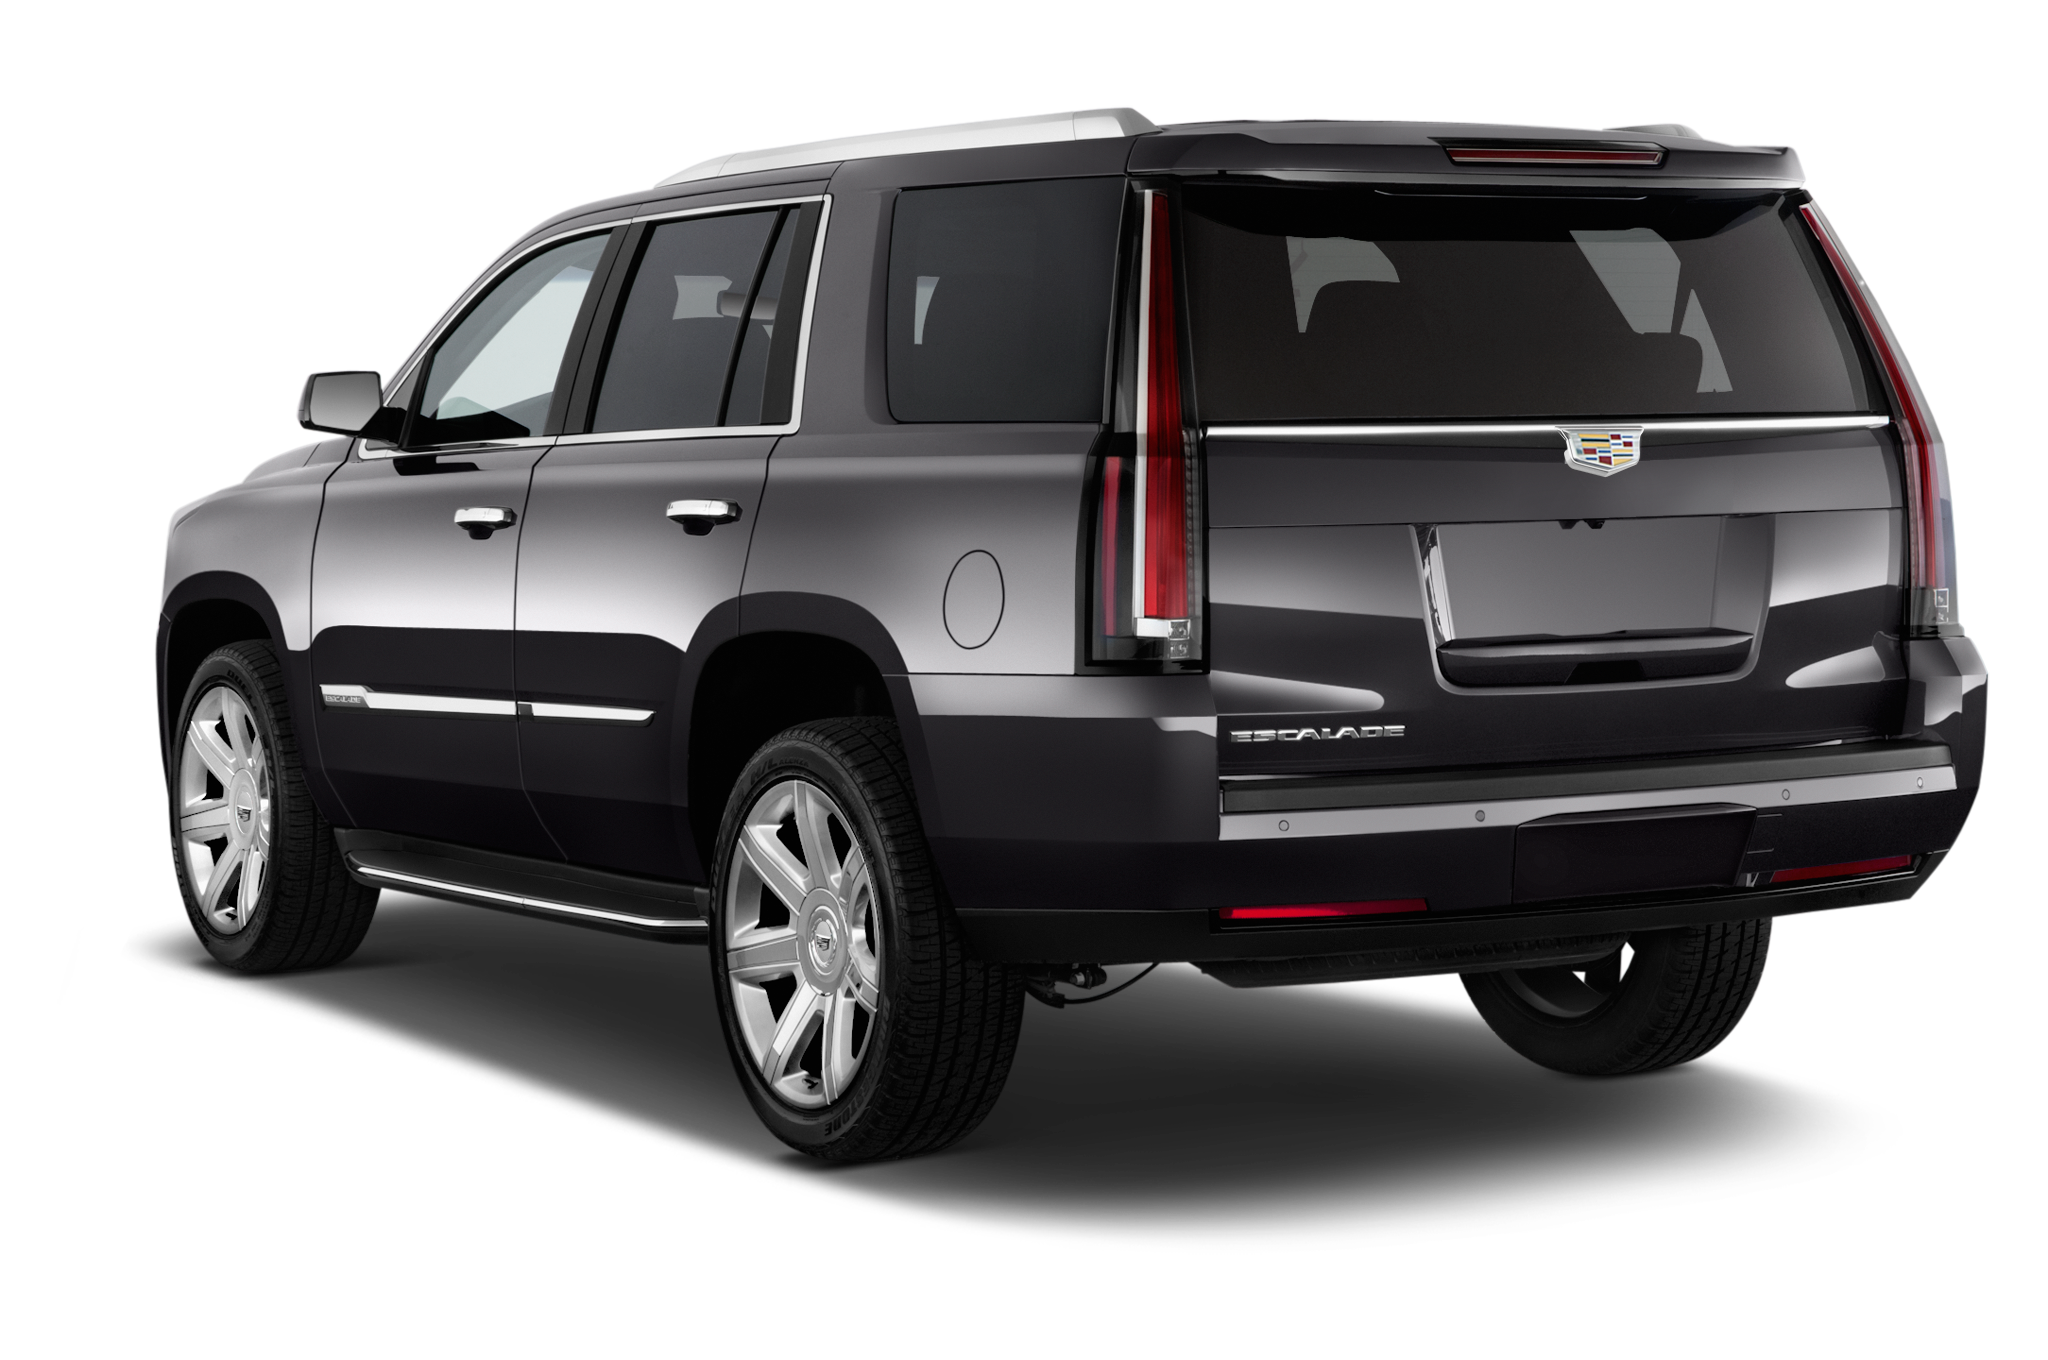 Cadillac Makes It Rain For Escalade Customers To Keep Them Away From